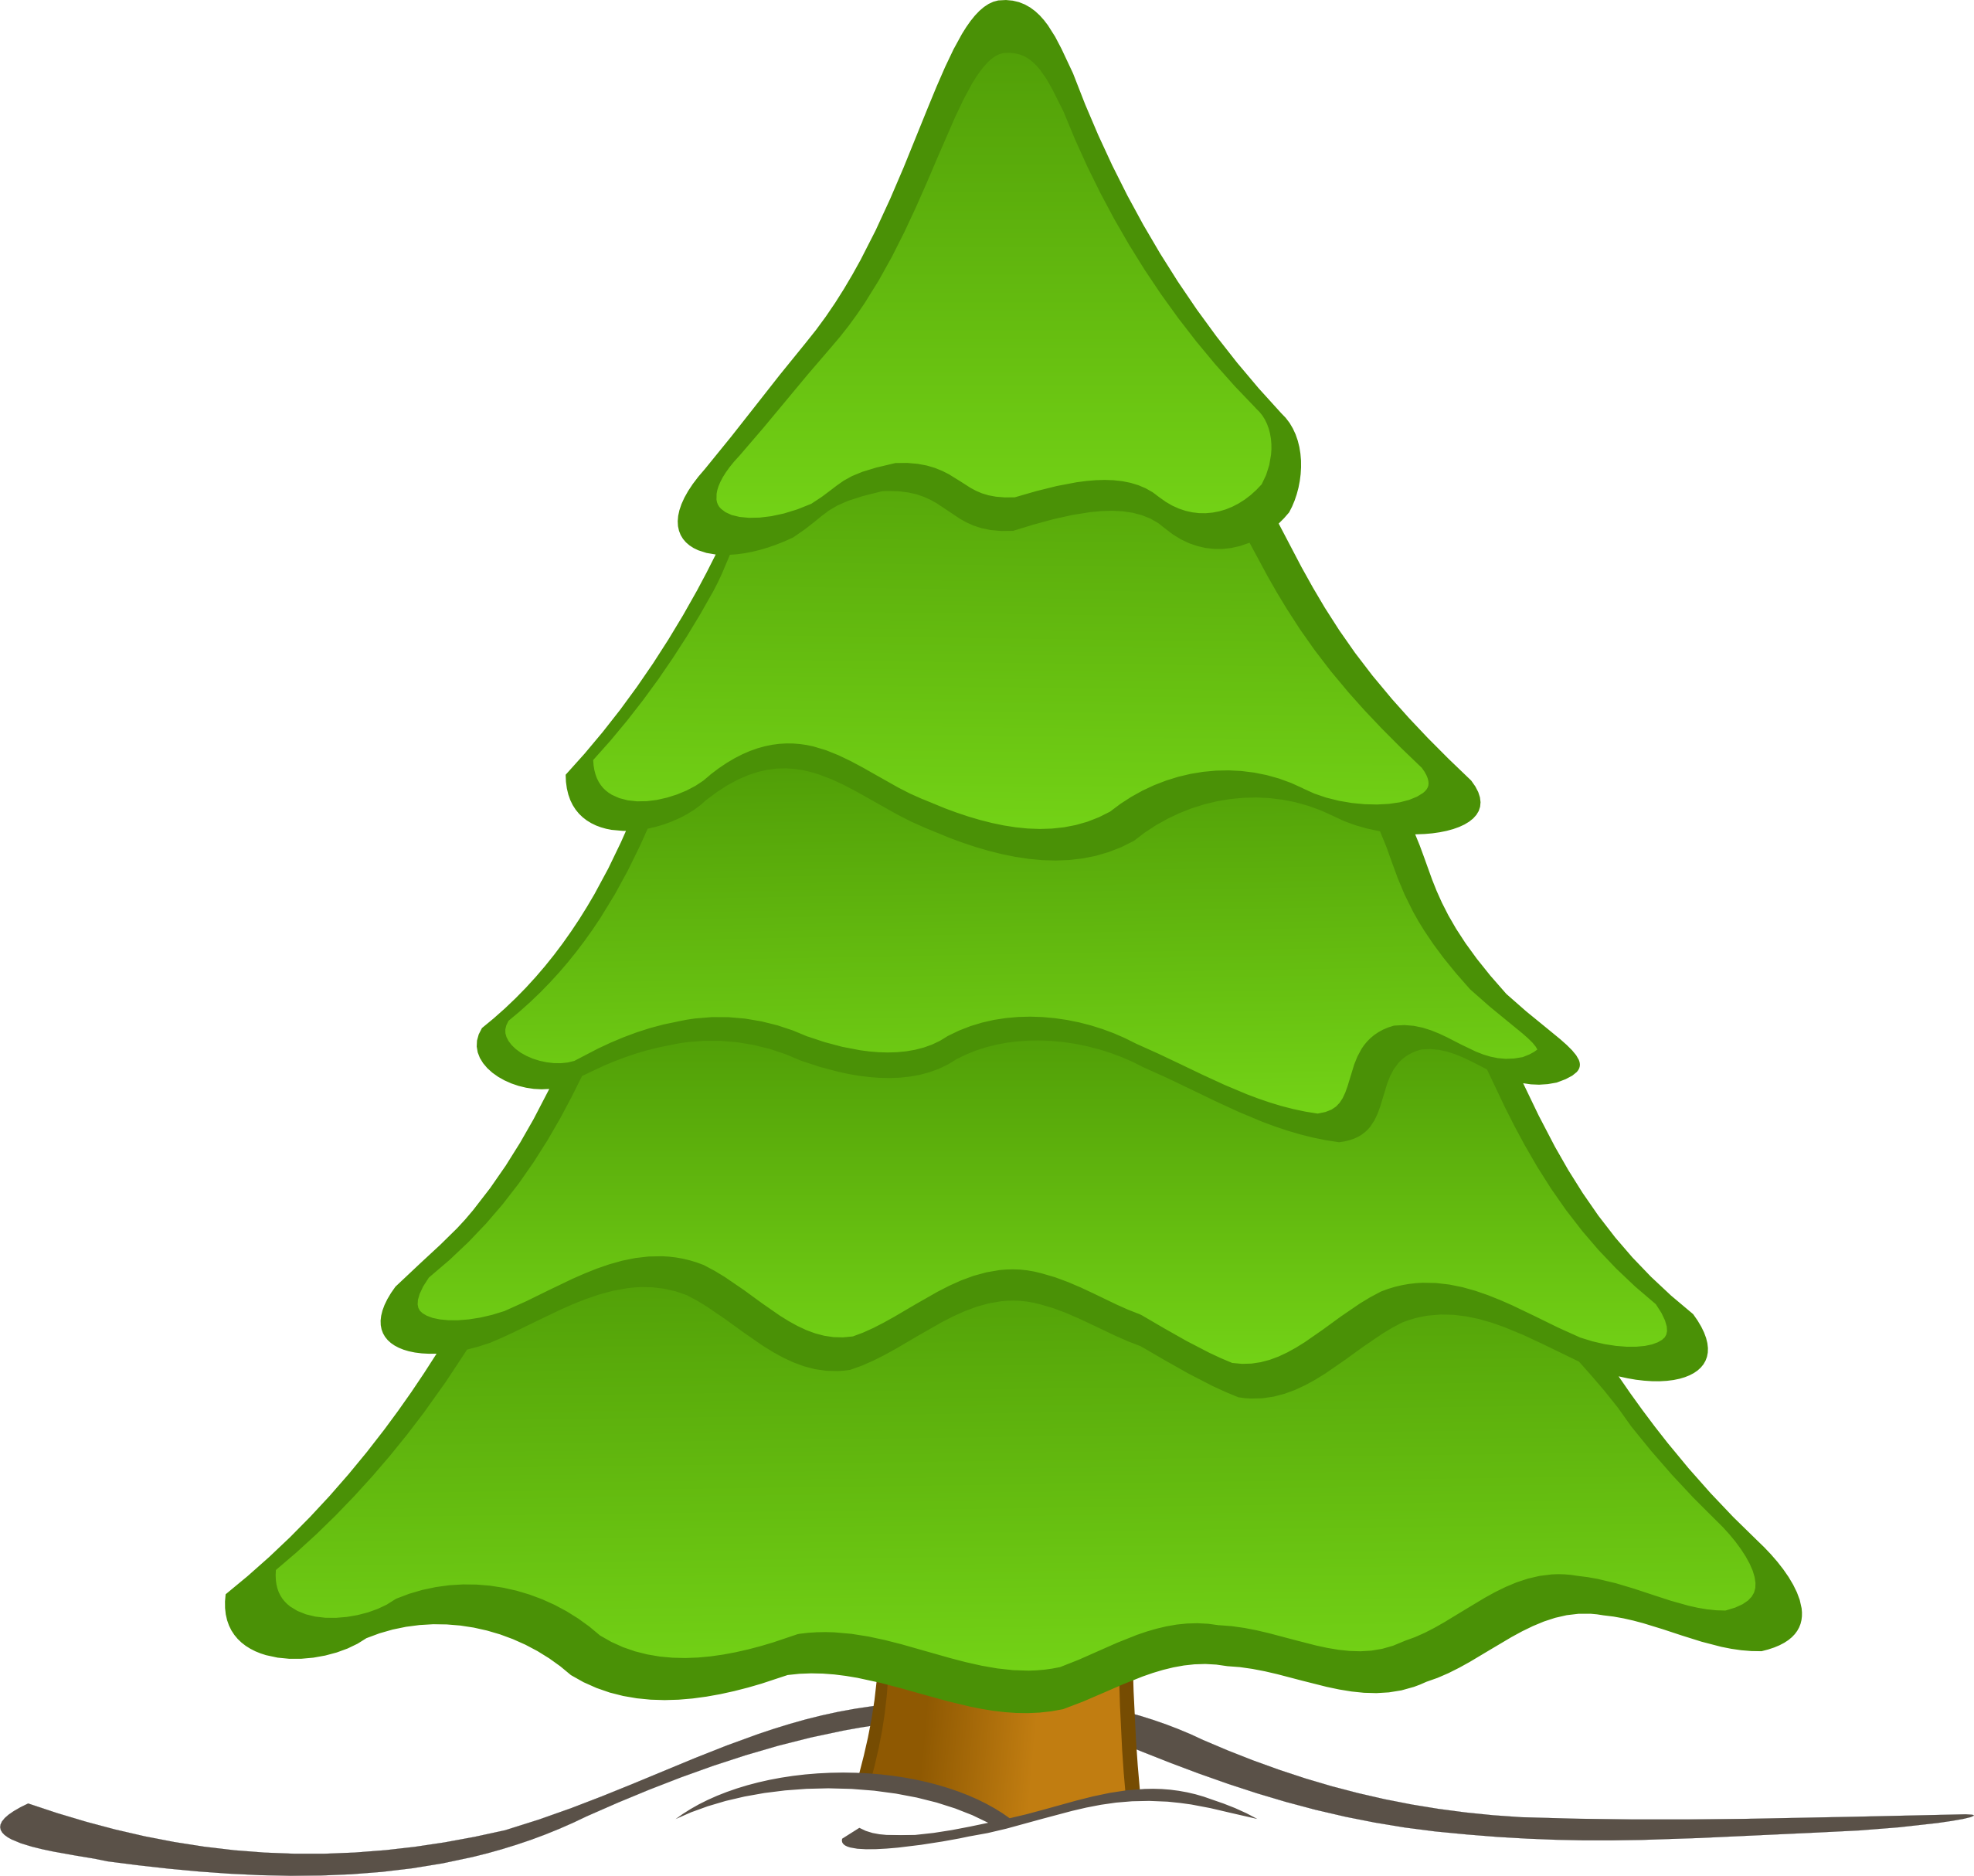 Abstract pine tree clipart image freeuse Evergreen Tree Clipart | Free download best Evergreen Tree Clipart ... image freeuse